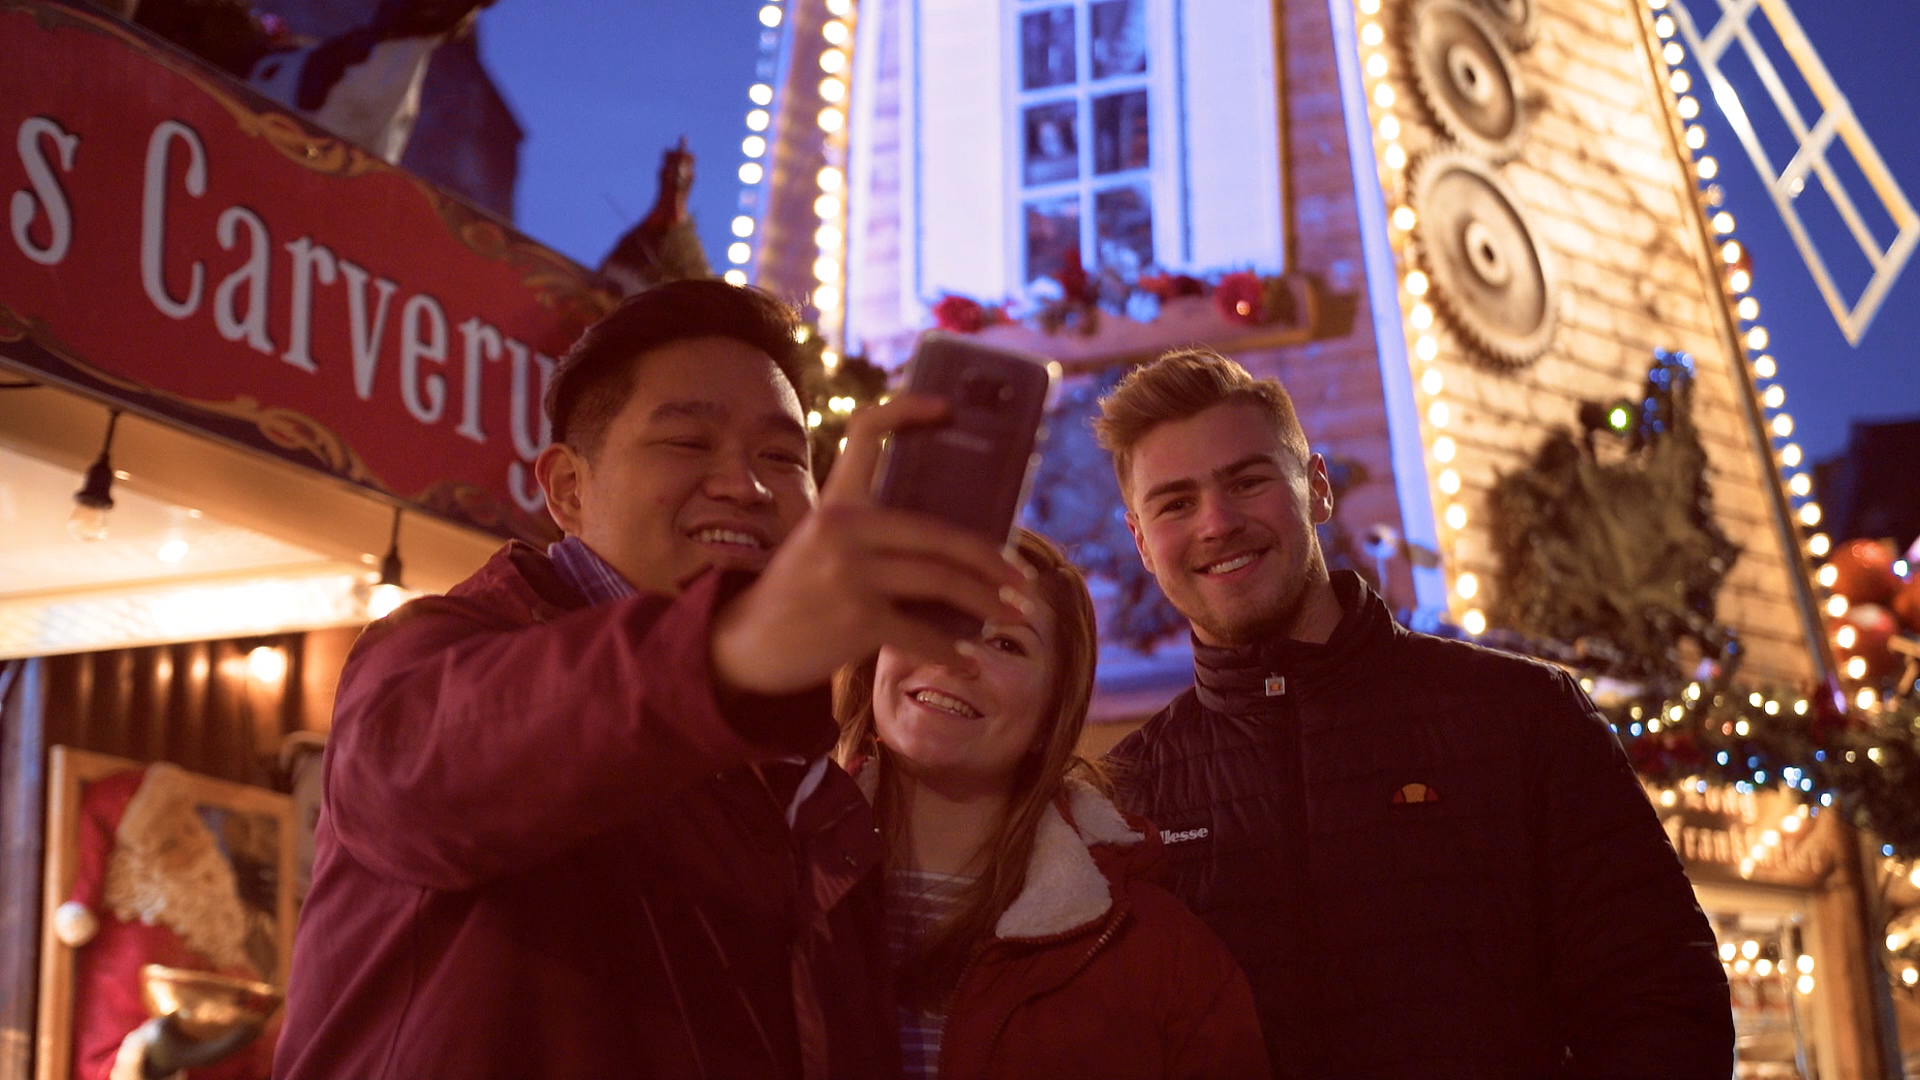 Cardiff Met Christmas promo - Video still